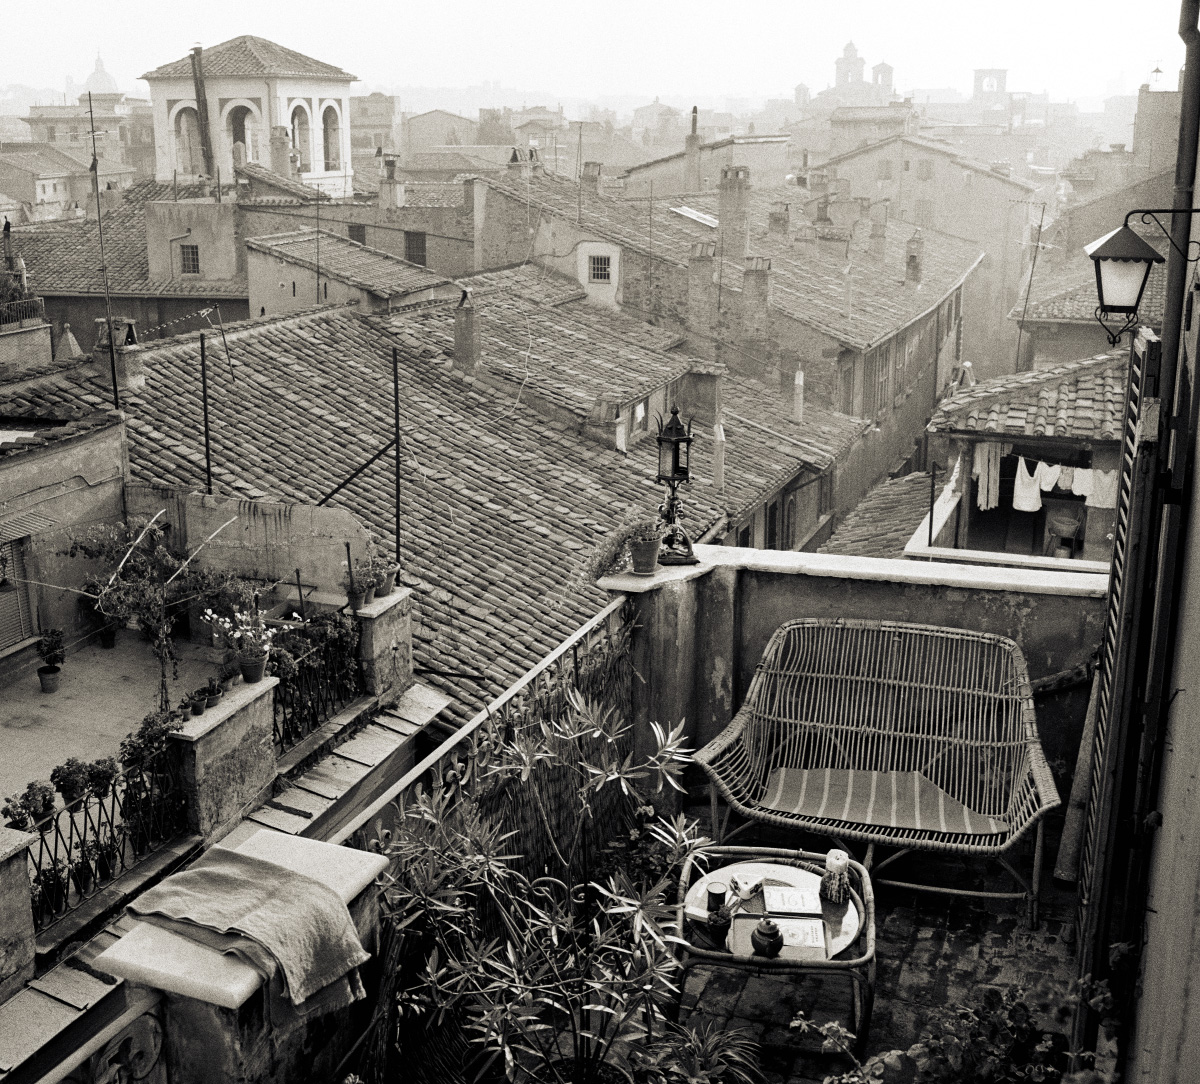 Black and white photo of rooftops in Rome, from the show and book